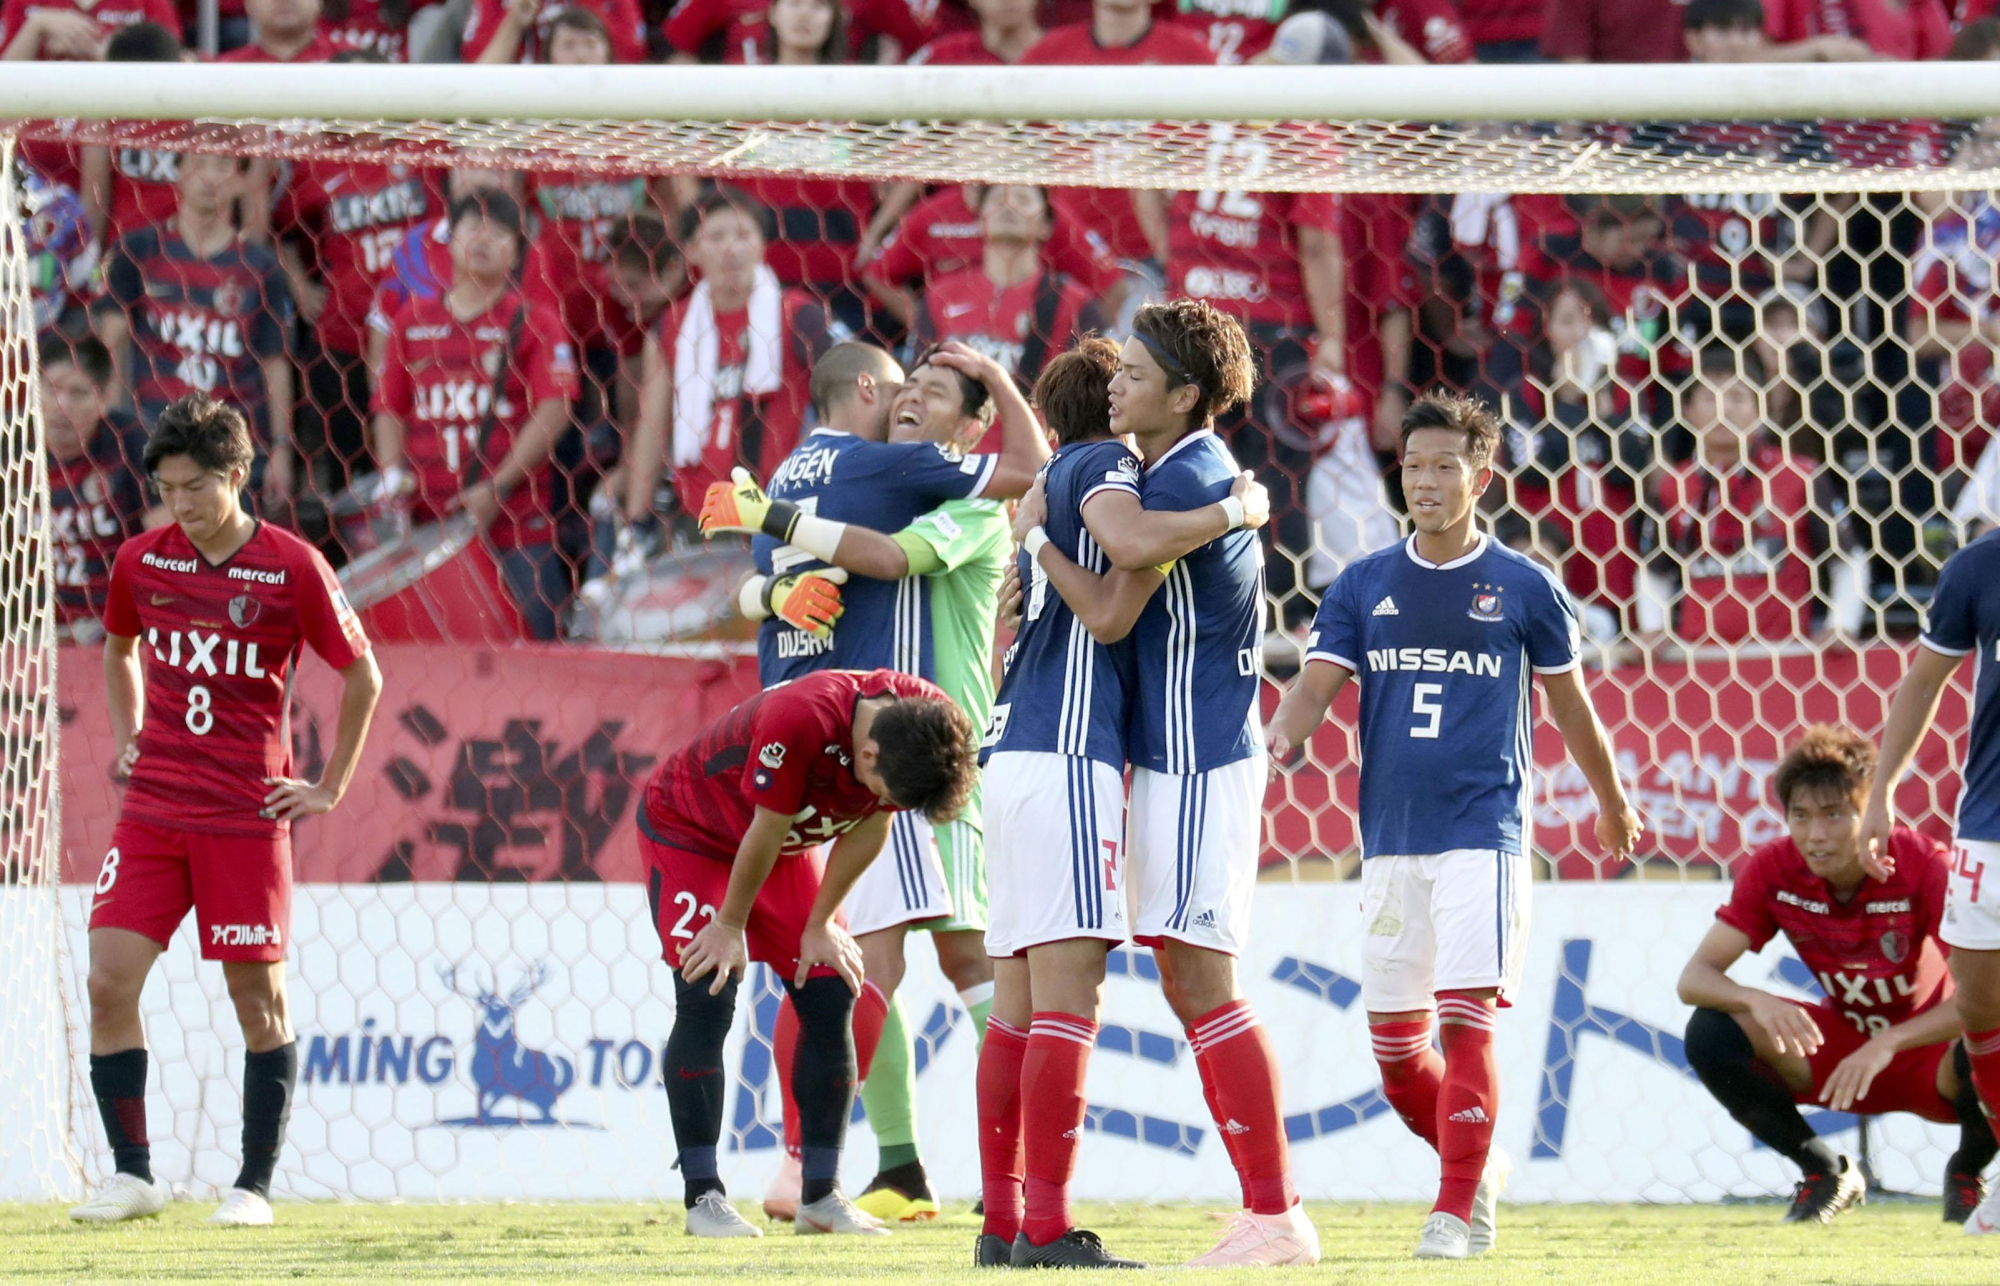 Yokohama F. Marinos players celebrate after the final whistle at Nippatsu Mitsuzawa Stadium on Sunday. The team clinched an appearance in the Levain Cup final with a 2-2 draw against Kashima Antlers. | KYODO